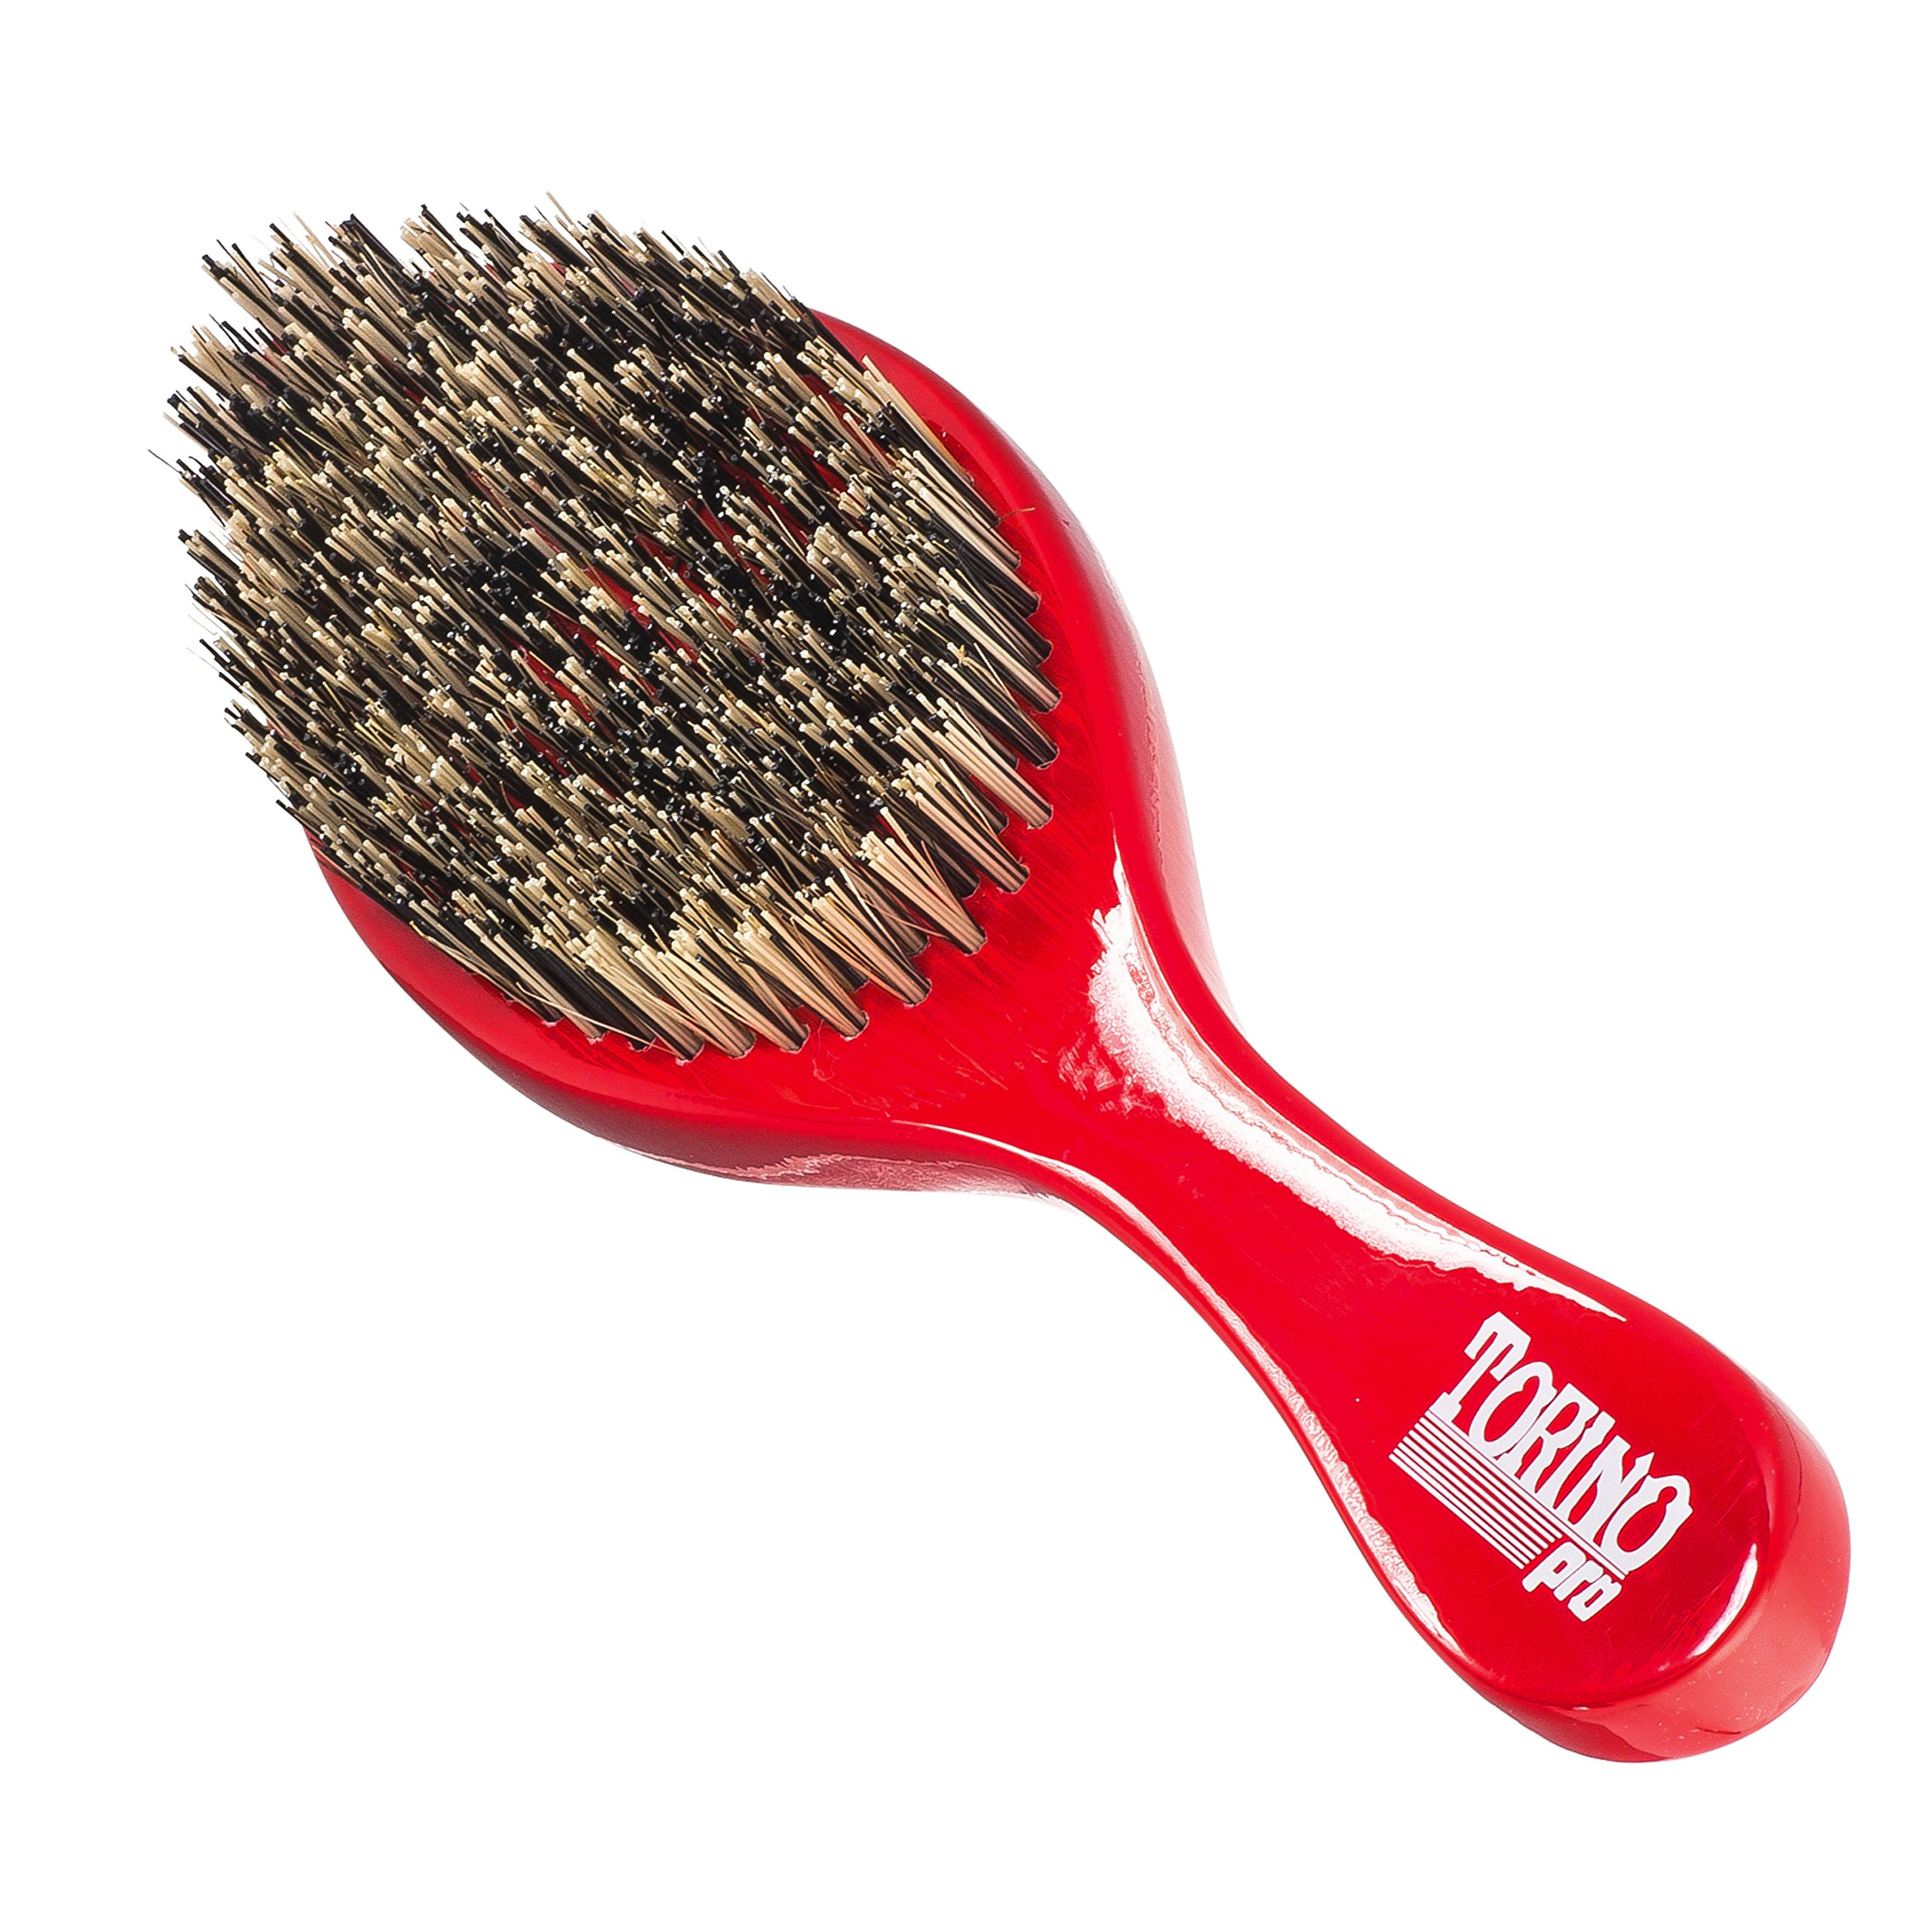 Torino Pro Wave Brush #470 by Brush King - Extra Hard Curve Wave Brush with Reinforced Boar & Nylon Bristles - Great for Wolfing - Curved 360 Waves Brush by Torino Pro (Image #1)